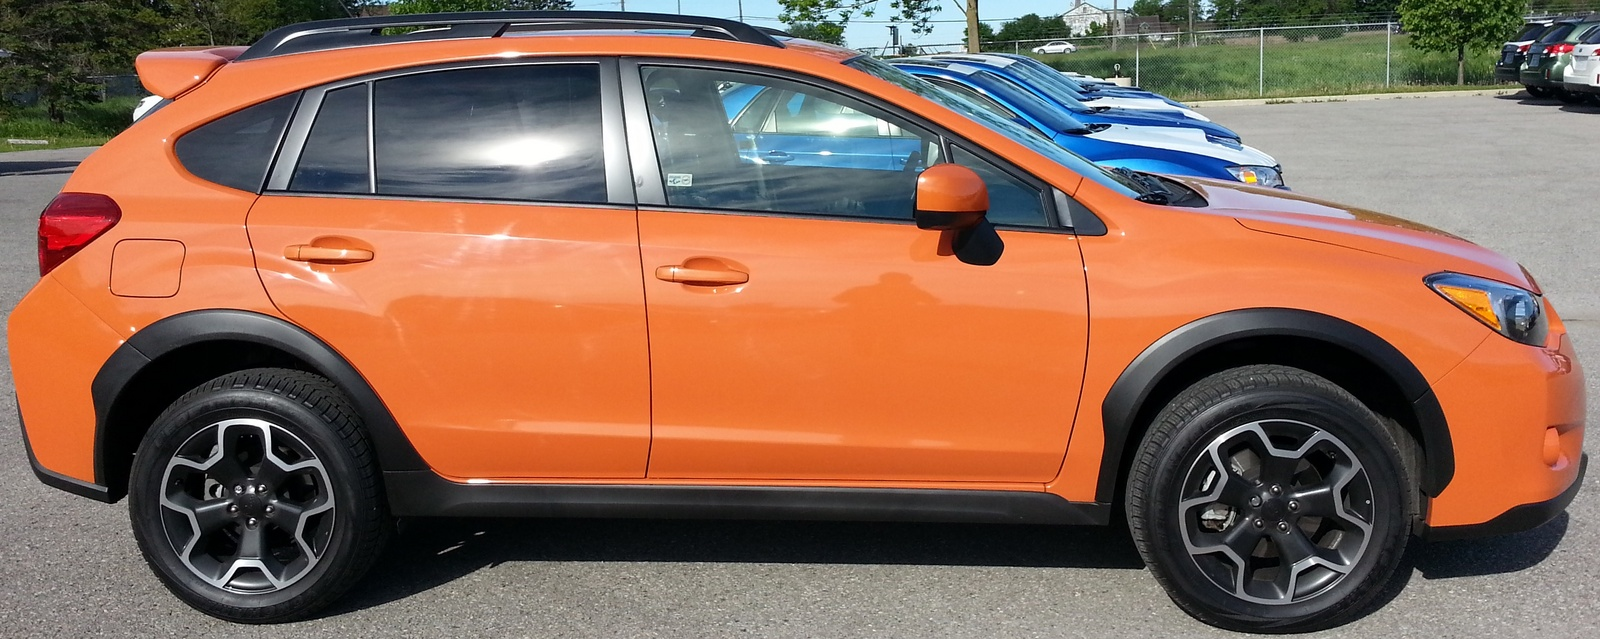 2014 Subaru XV Crosstrek Specs, Price, Trim Levels, User